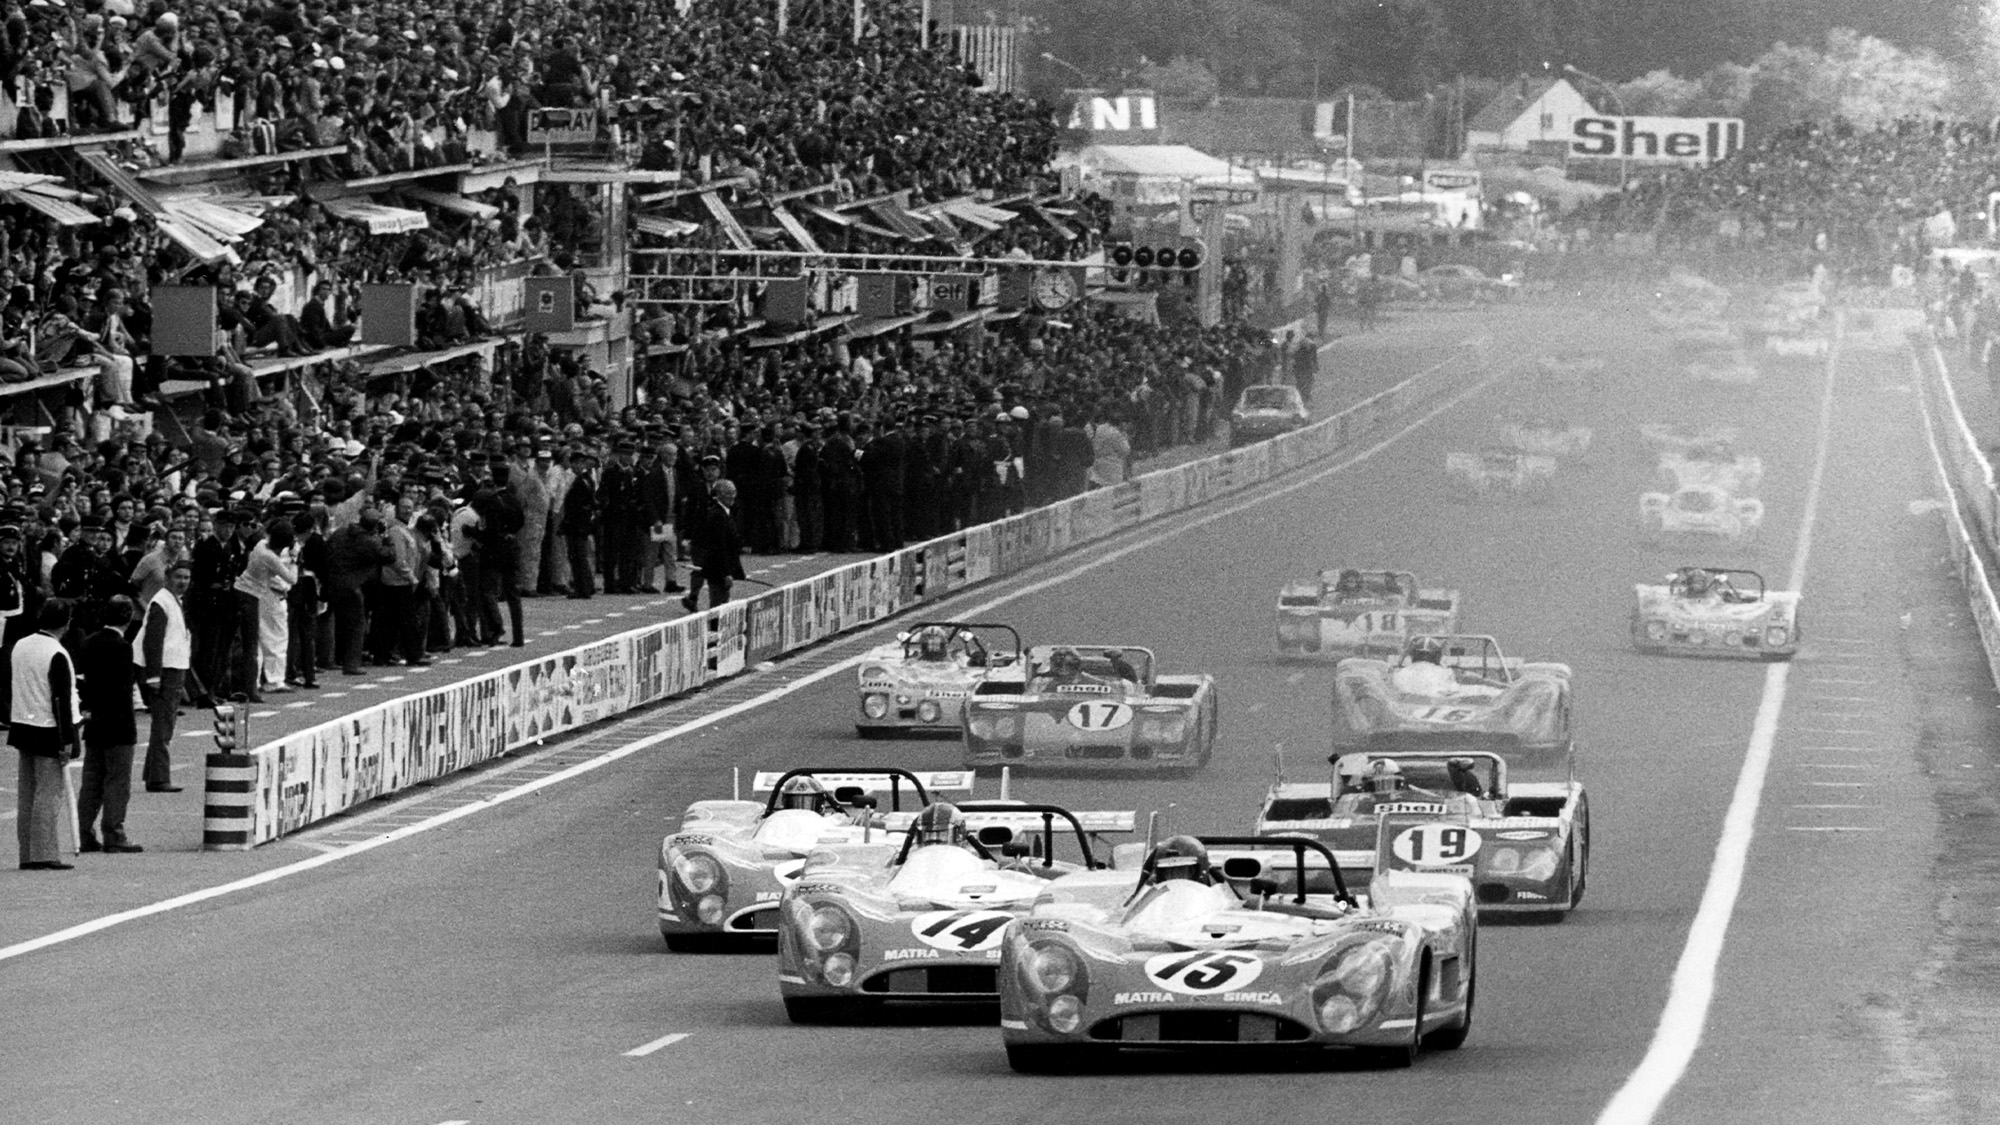 Henri Pescarolo leads in the 1972 Le Mans 24 hours behind the wheel of the Matra-Simca MS 670